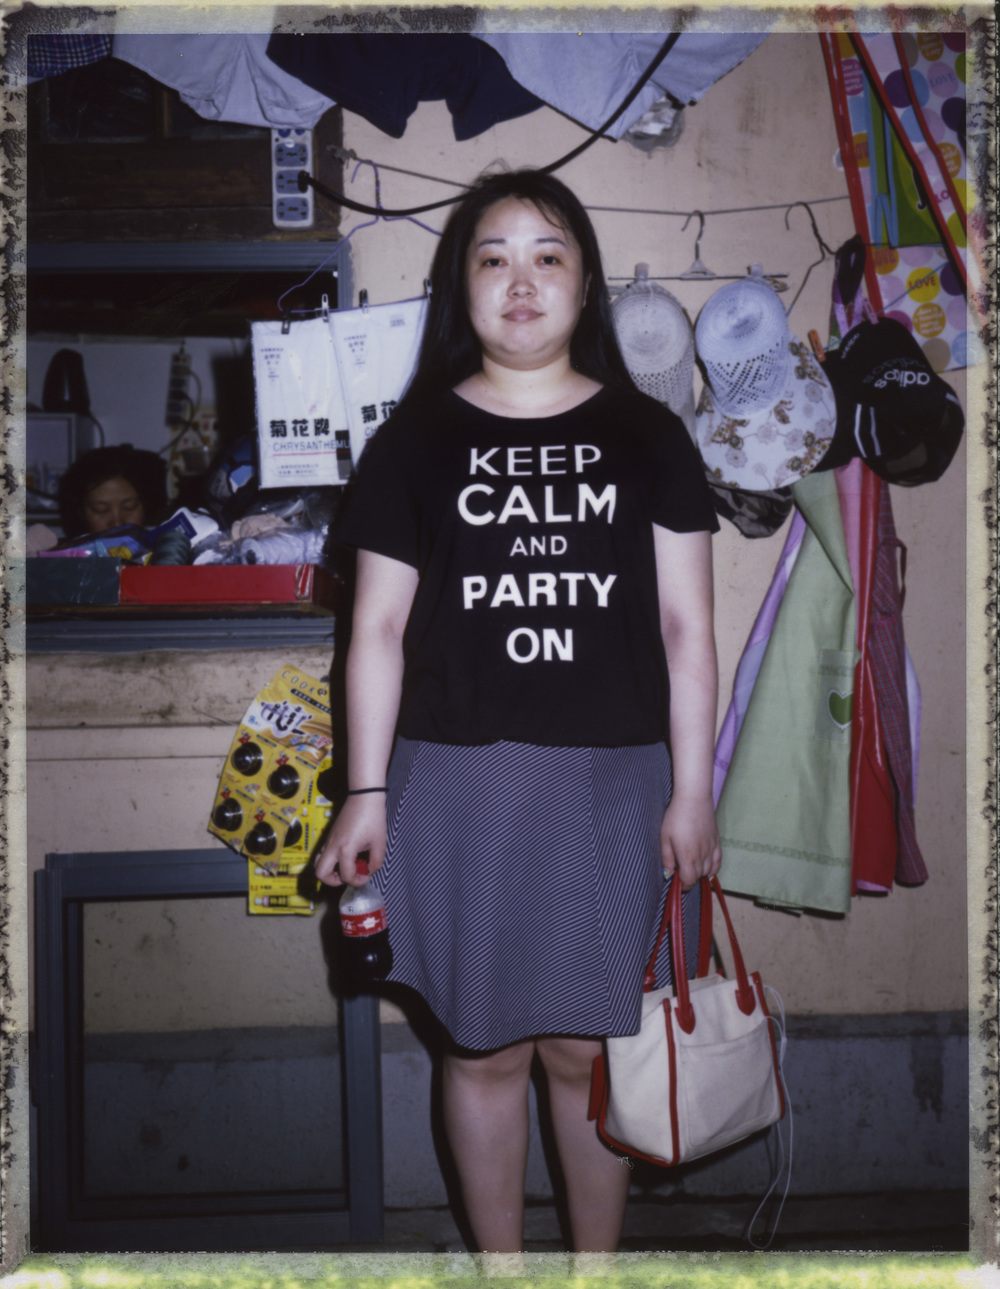 keep calm and party on.jpg